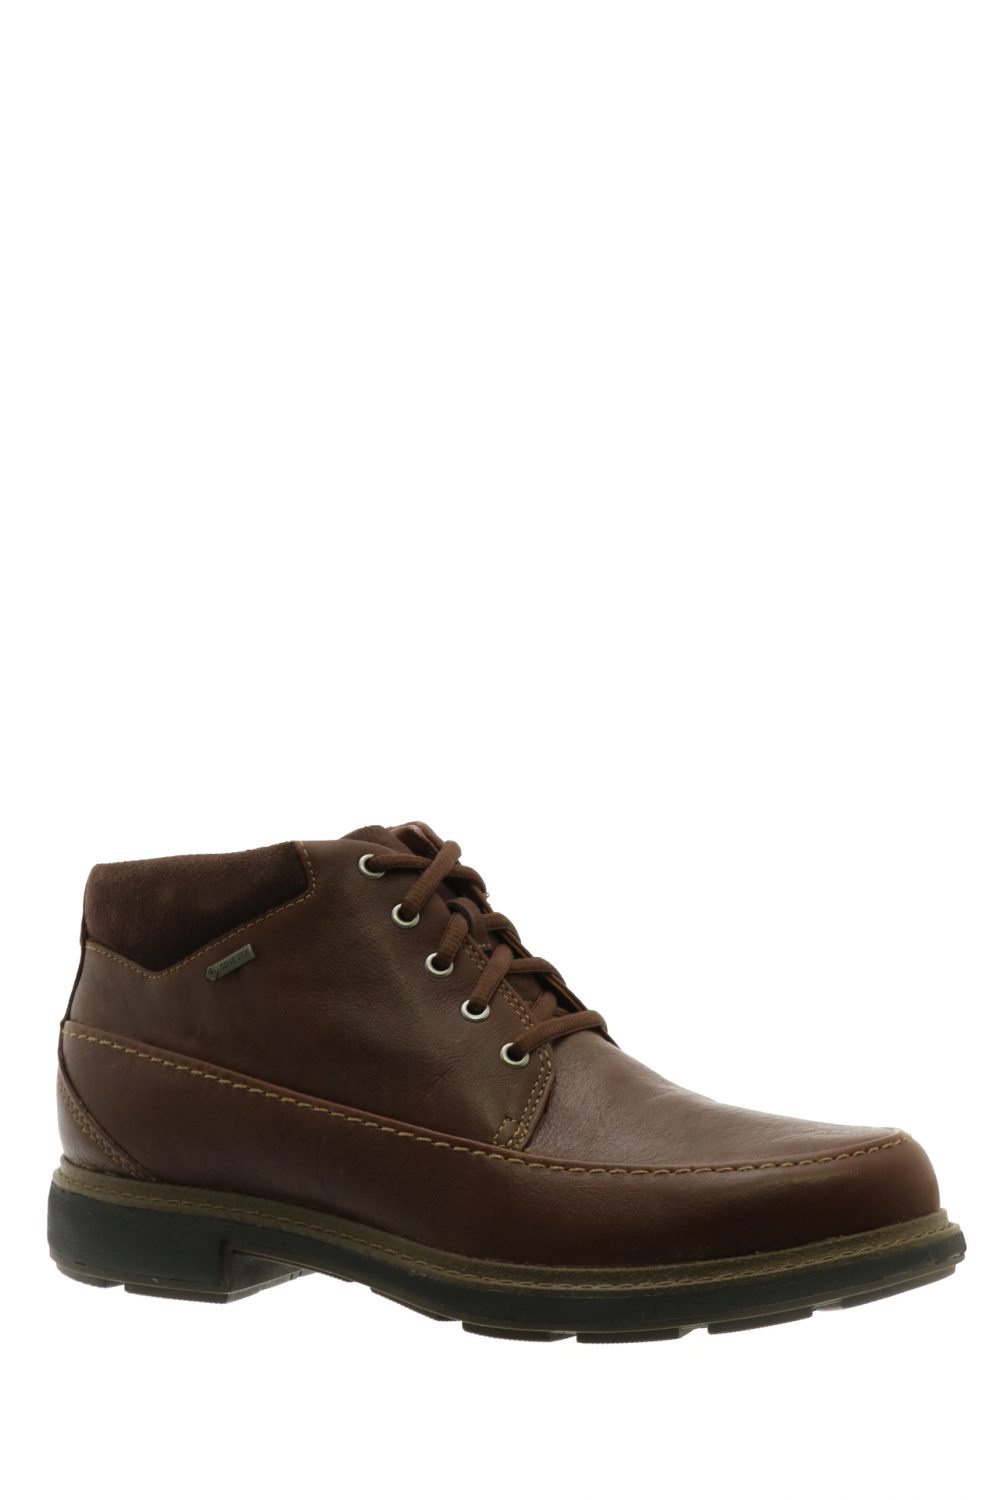 Clarks UN TREAD ON